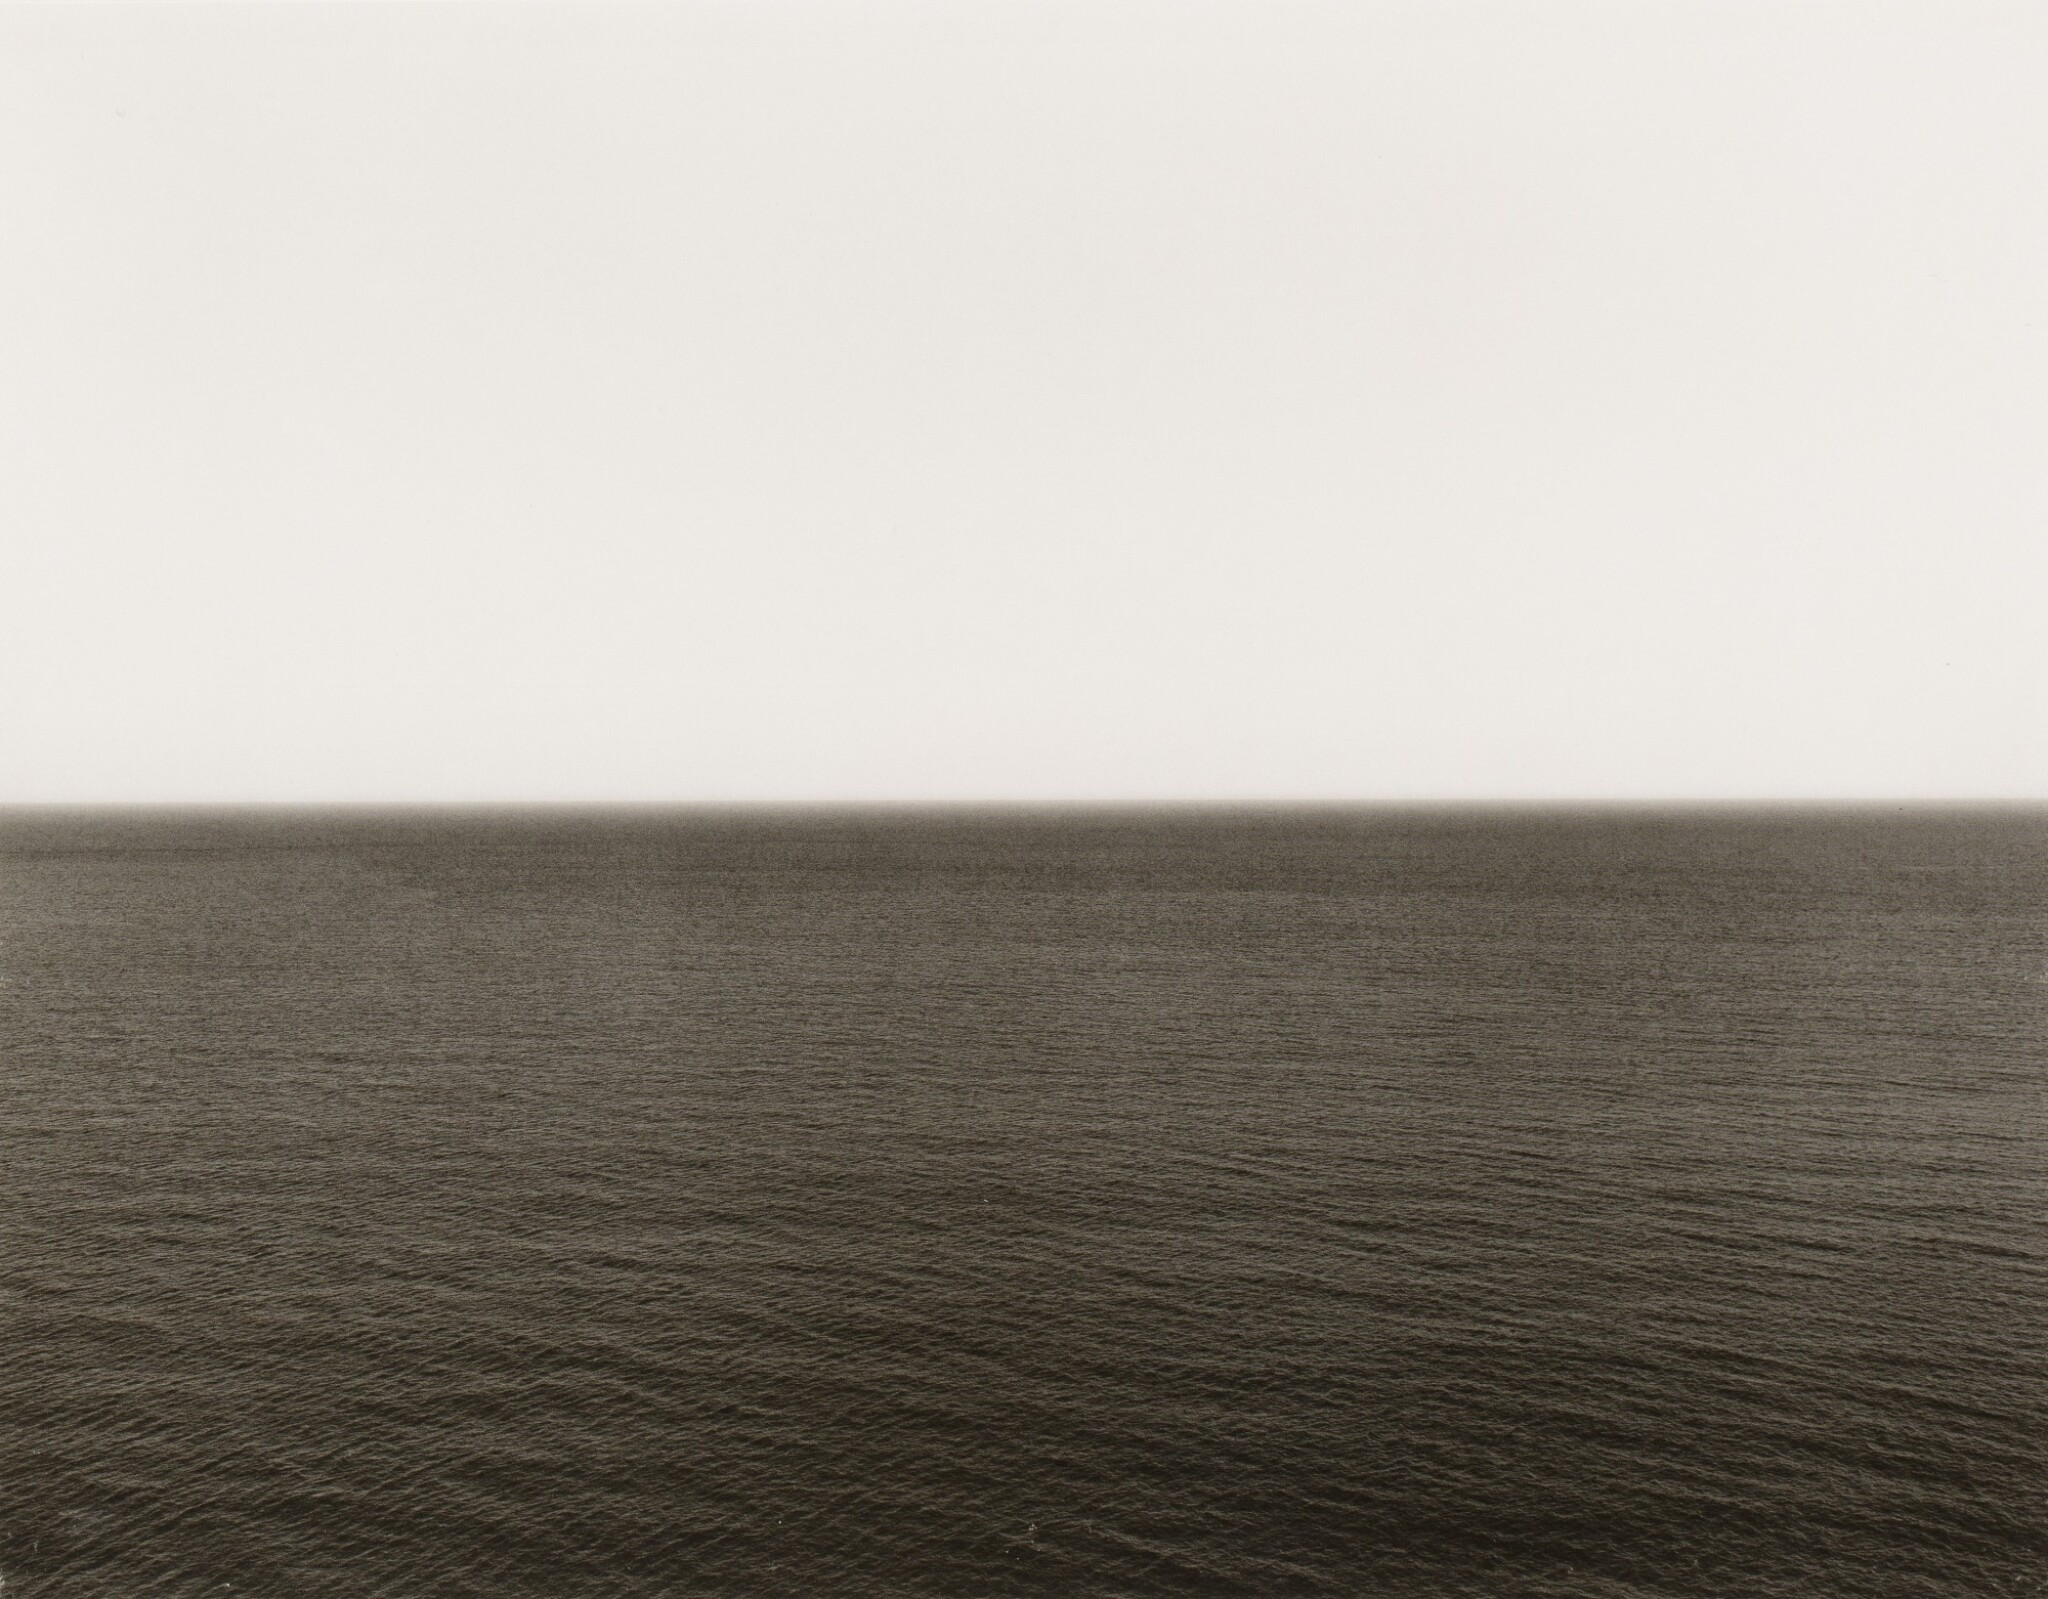 View 1 of Lot 1. Hiroshi Sugimoto | Time Exposed, 1991 .